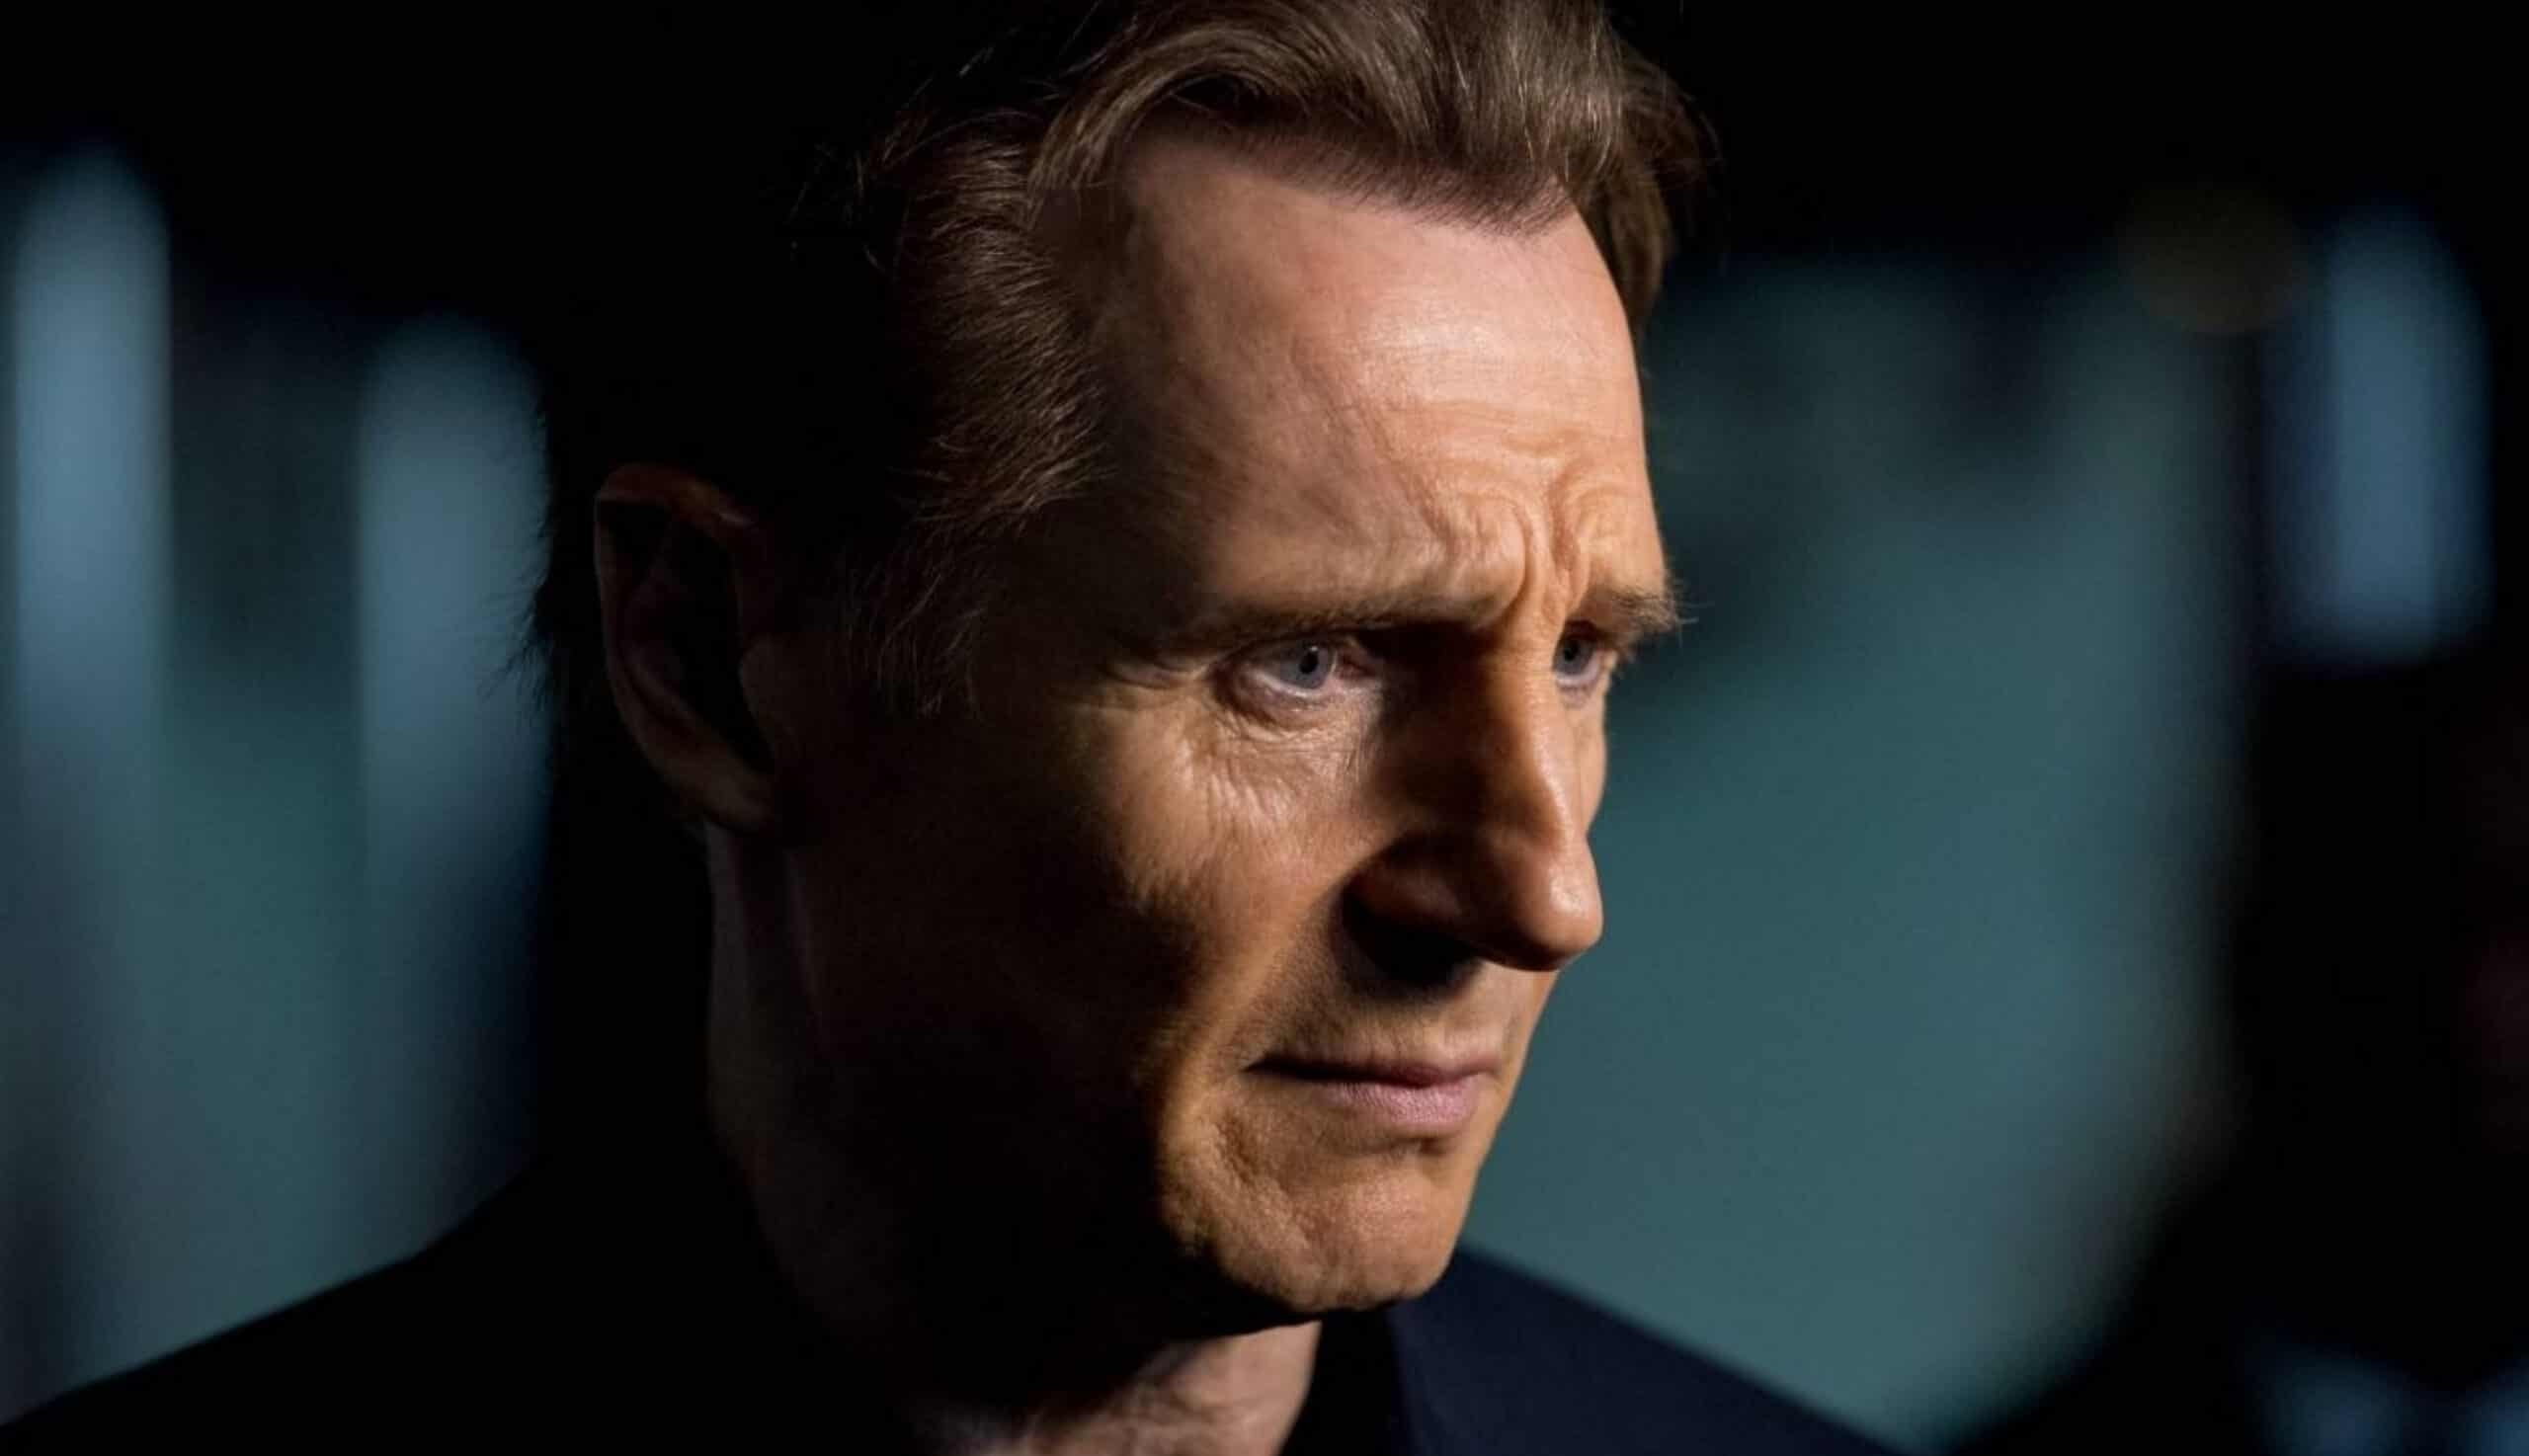 Liam Neeson by Roy Rochlin